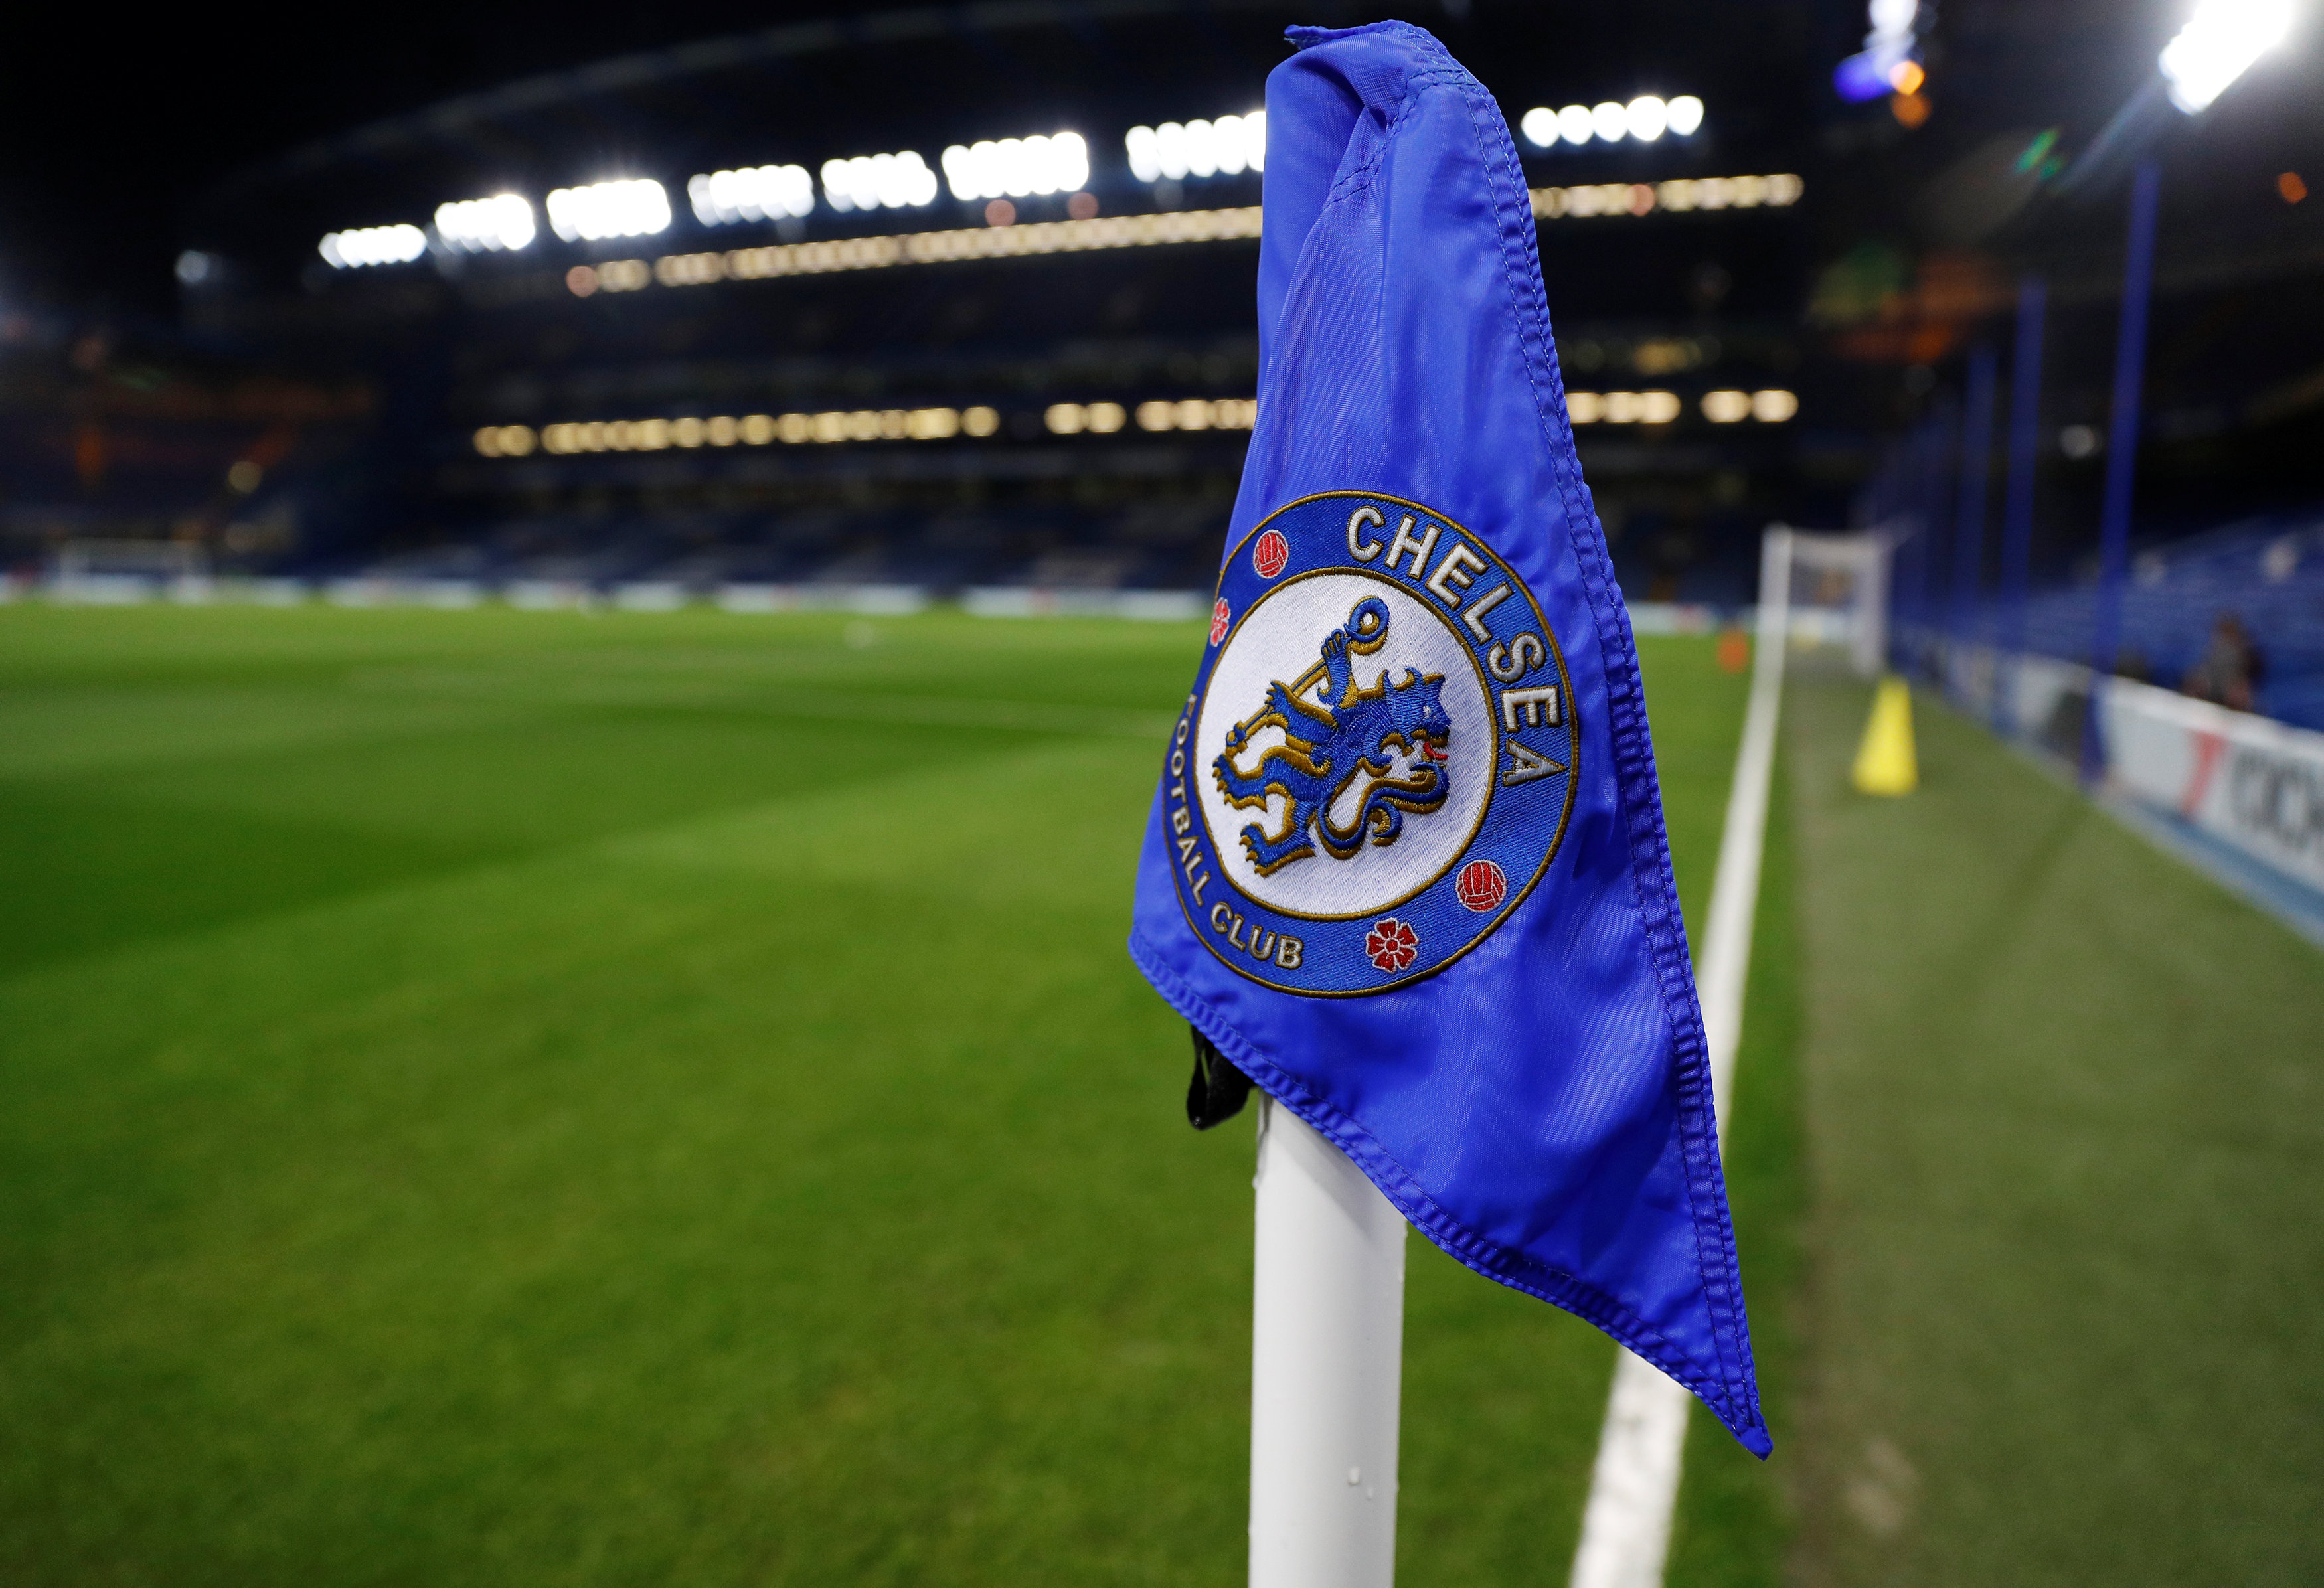 What then is the solution at Stamford Bridge